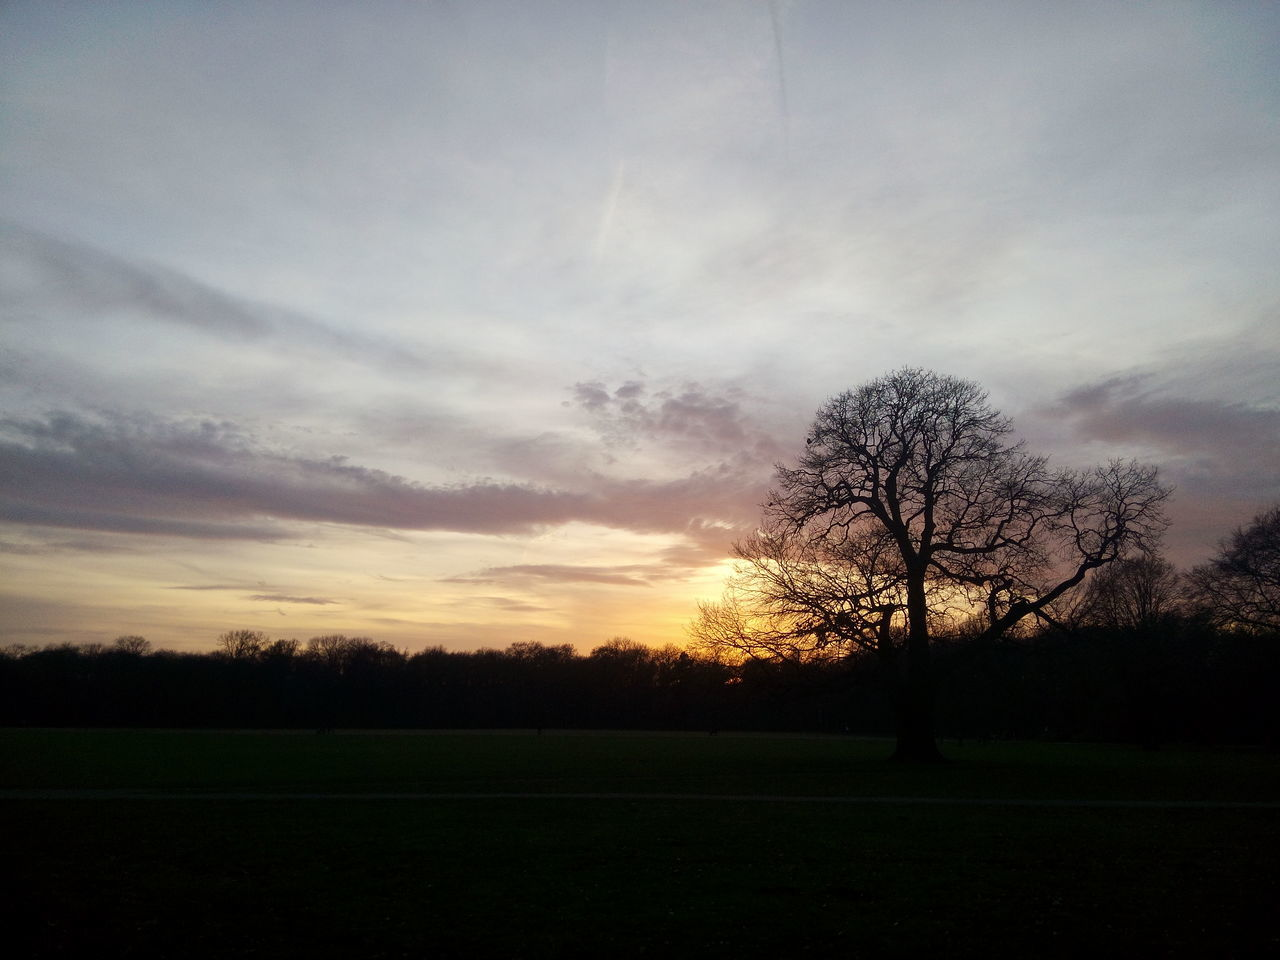 sunset, tree, sky, nature, beauty in nature, cloud - sky, field, idyllic, tranquility, silhouette, growth, tranquil scene, no people, outdoors, day